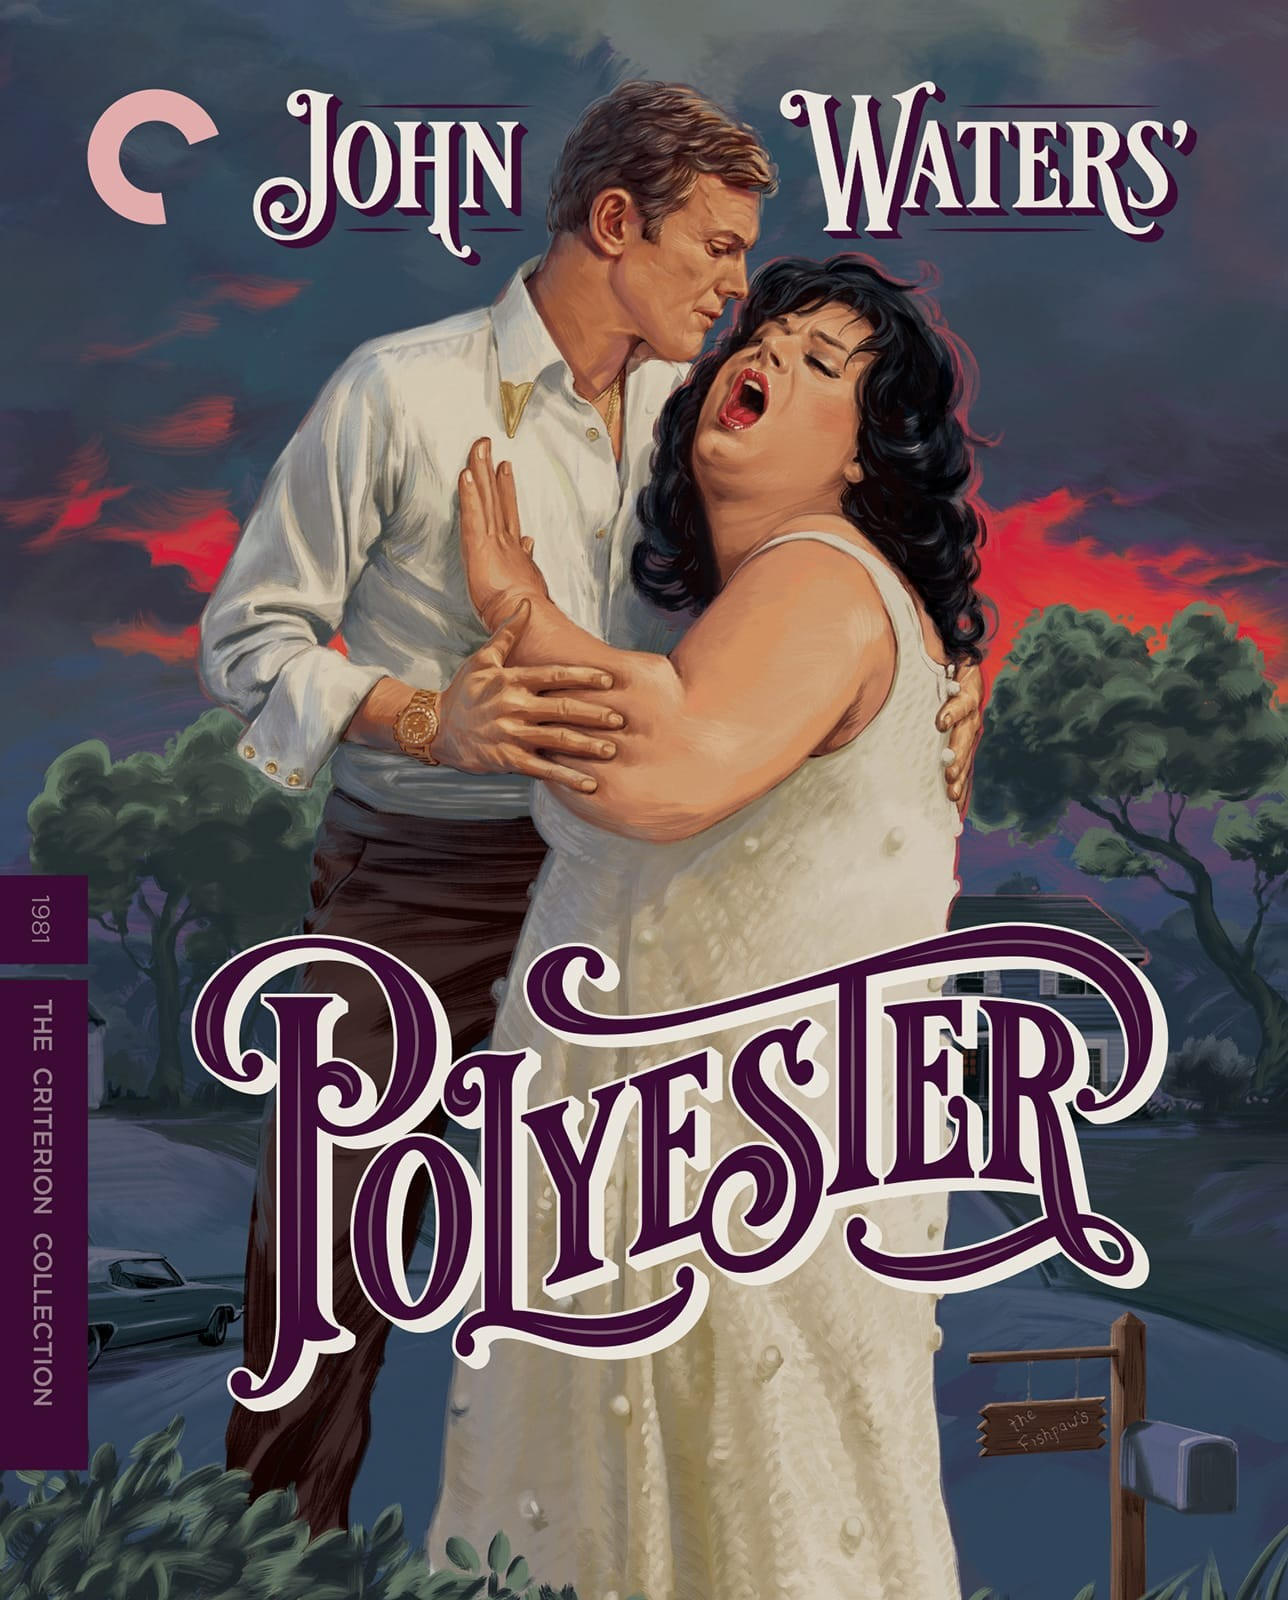 Polyester (1981) | The Criterion Collection